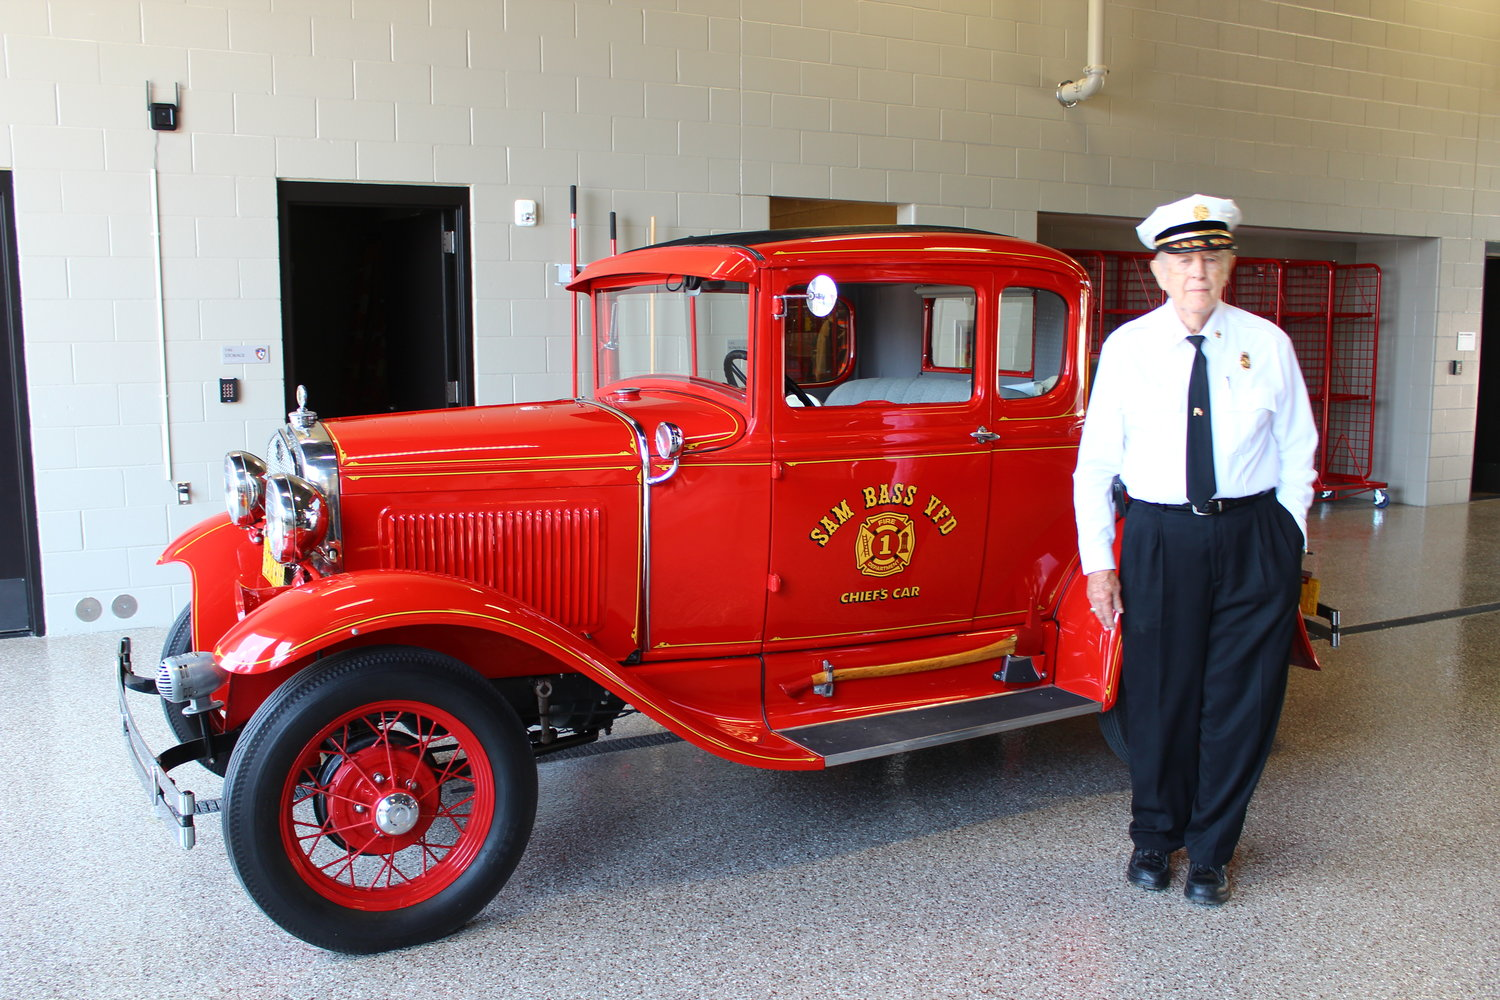 Former Sam Bass Fire Chief Bob Steinman poses with his car during during the grand opening of the Sam Bass Fire Station 3 in Round Rock during a grand opening ceremony on May 16, 2019.